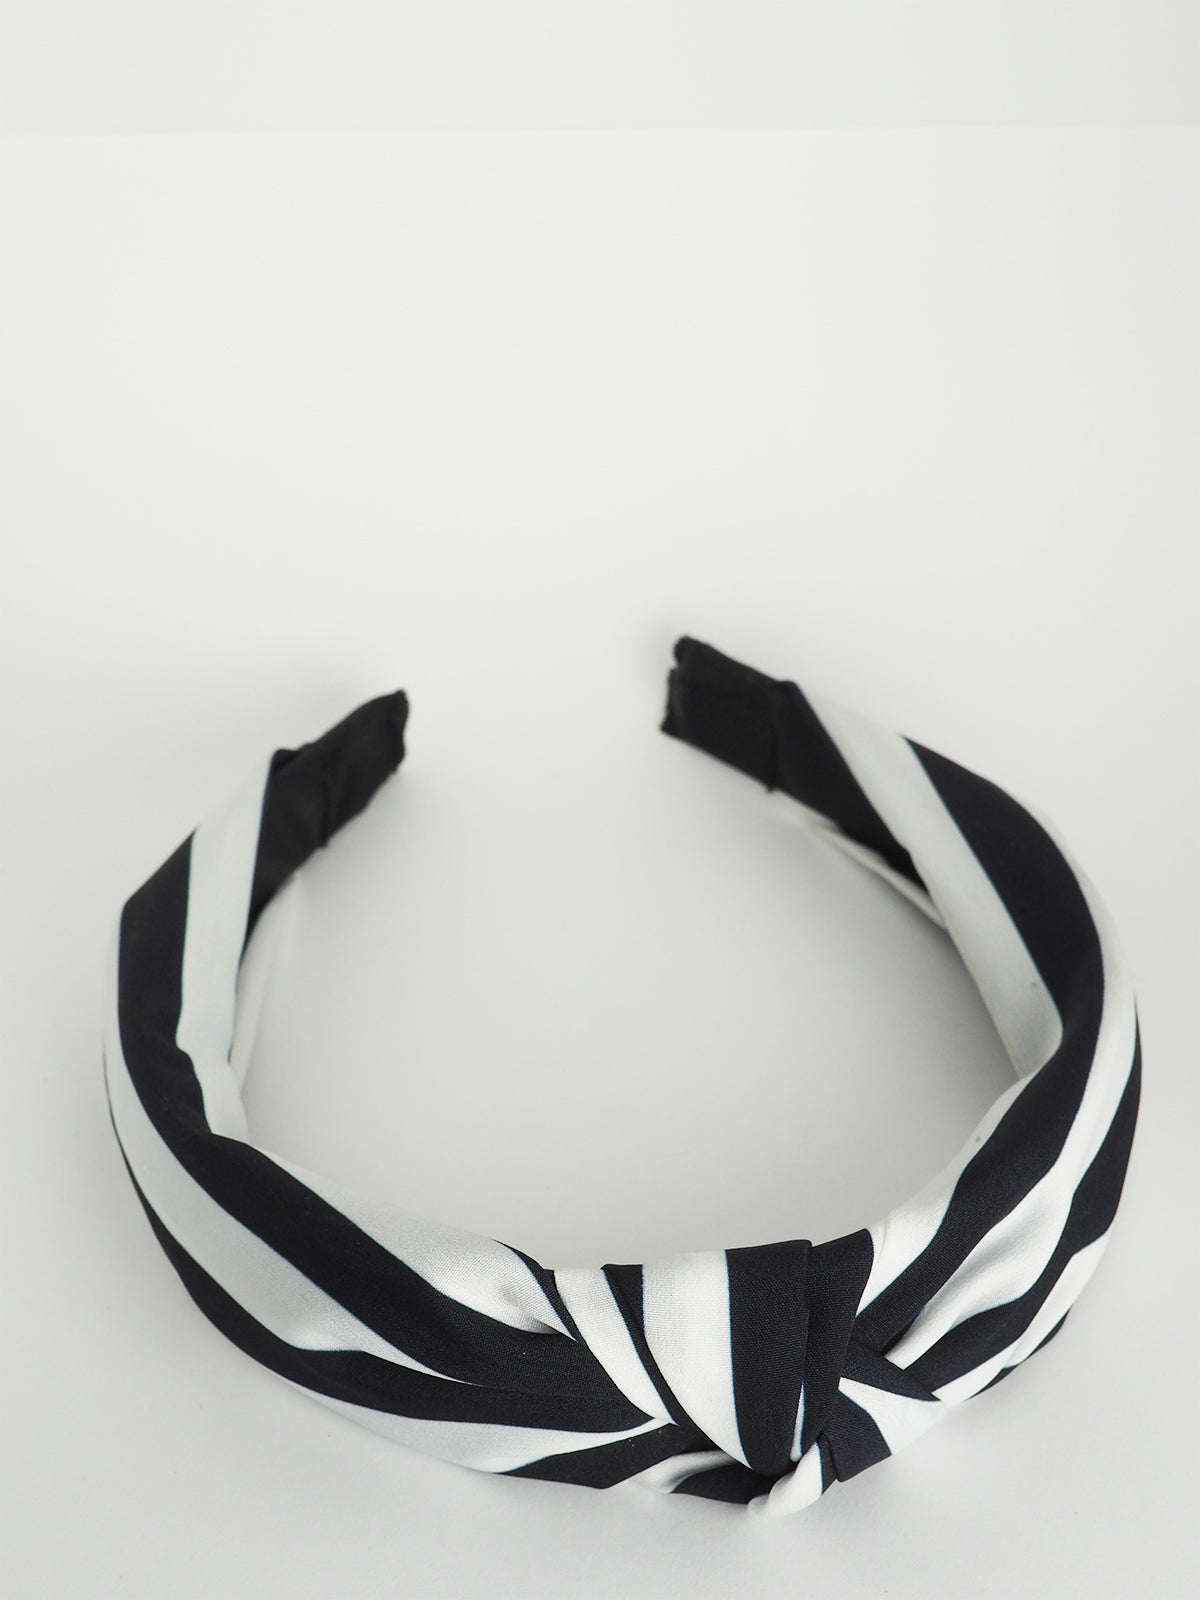 HELLO DARLING HEADBAND IN BLACK & WHITE STRIPE